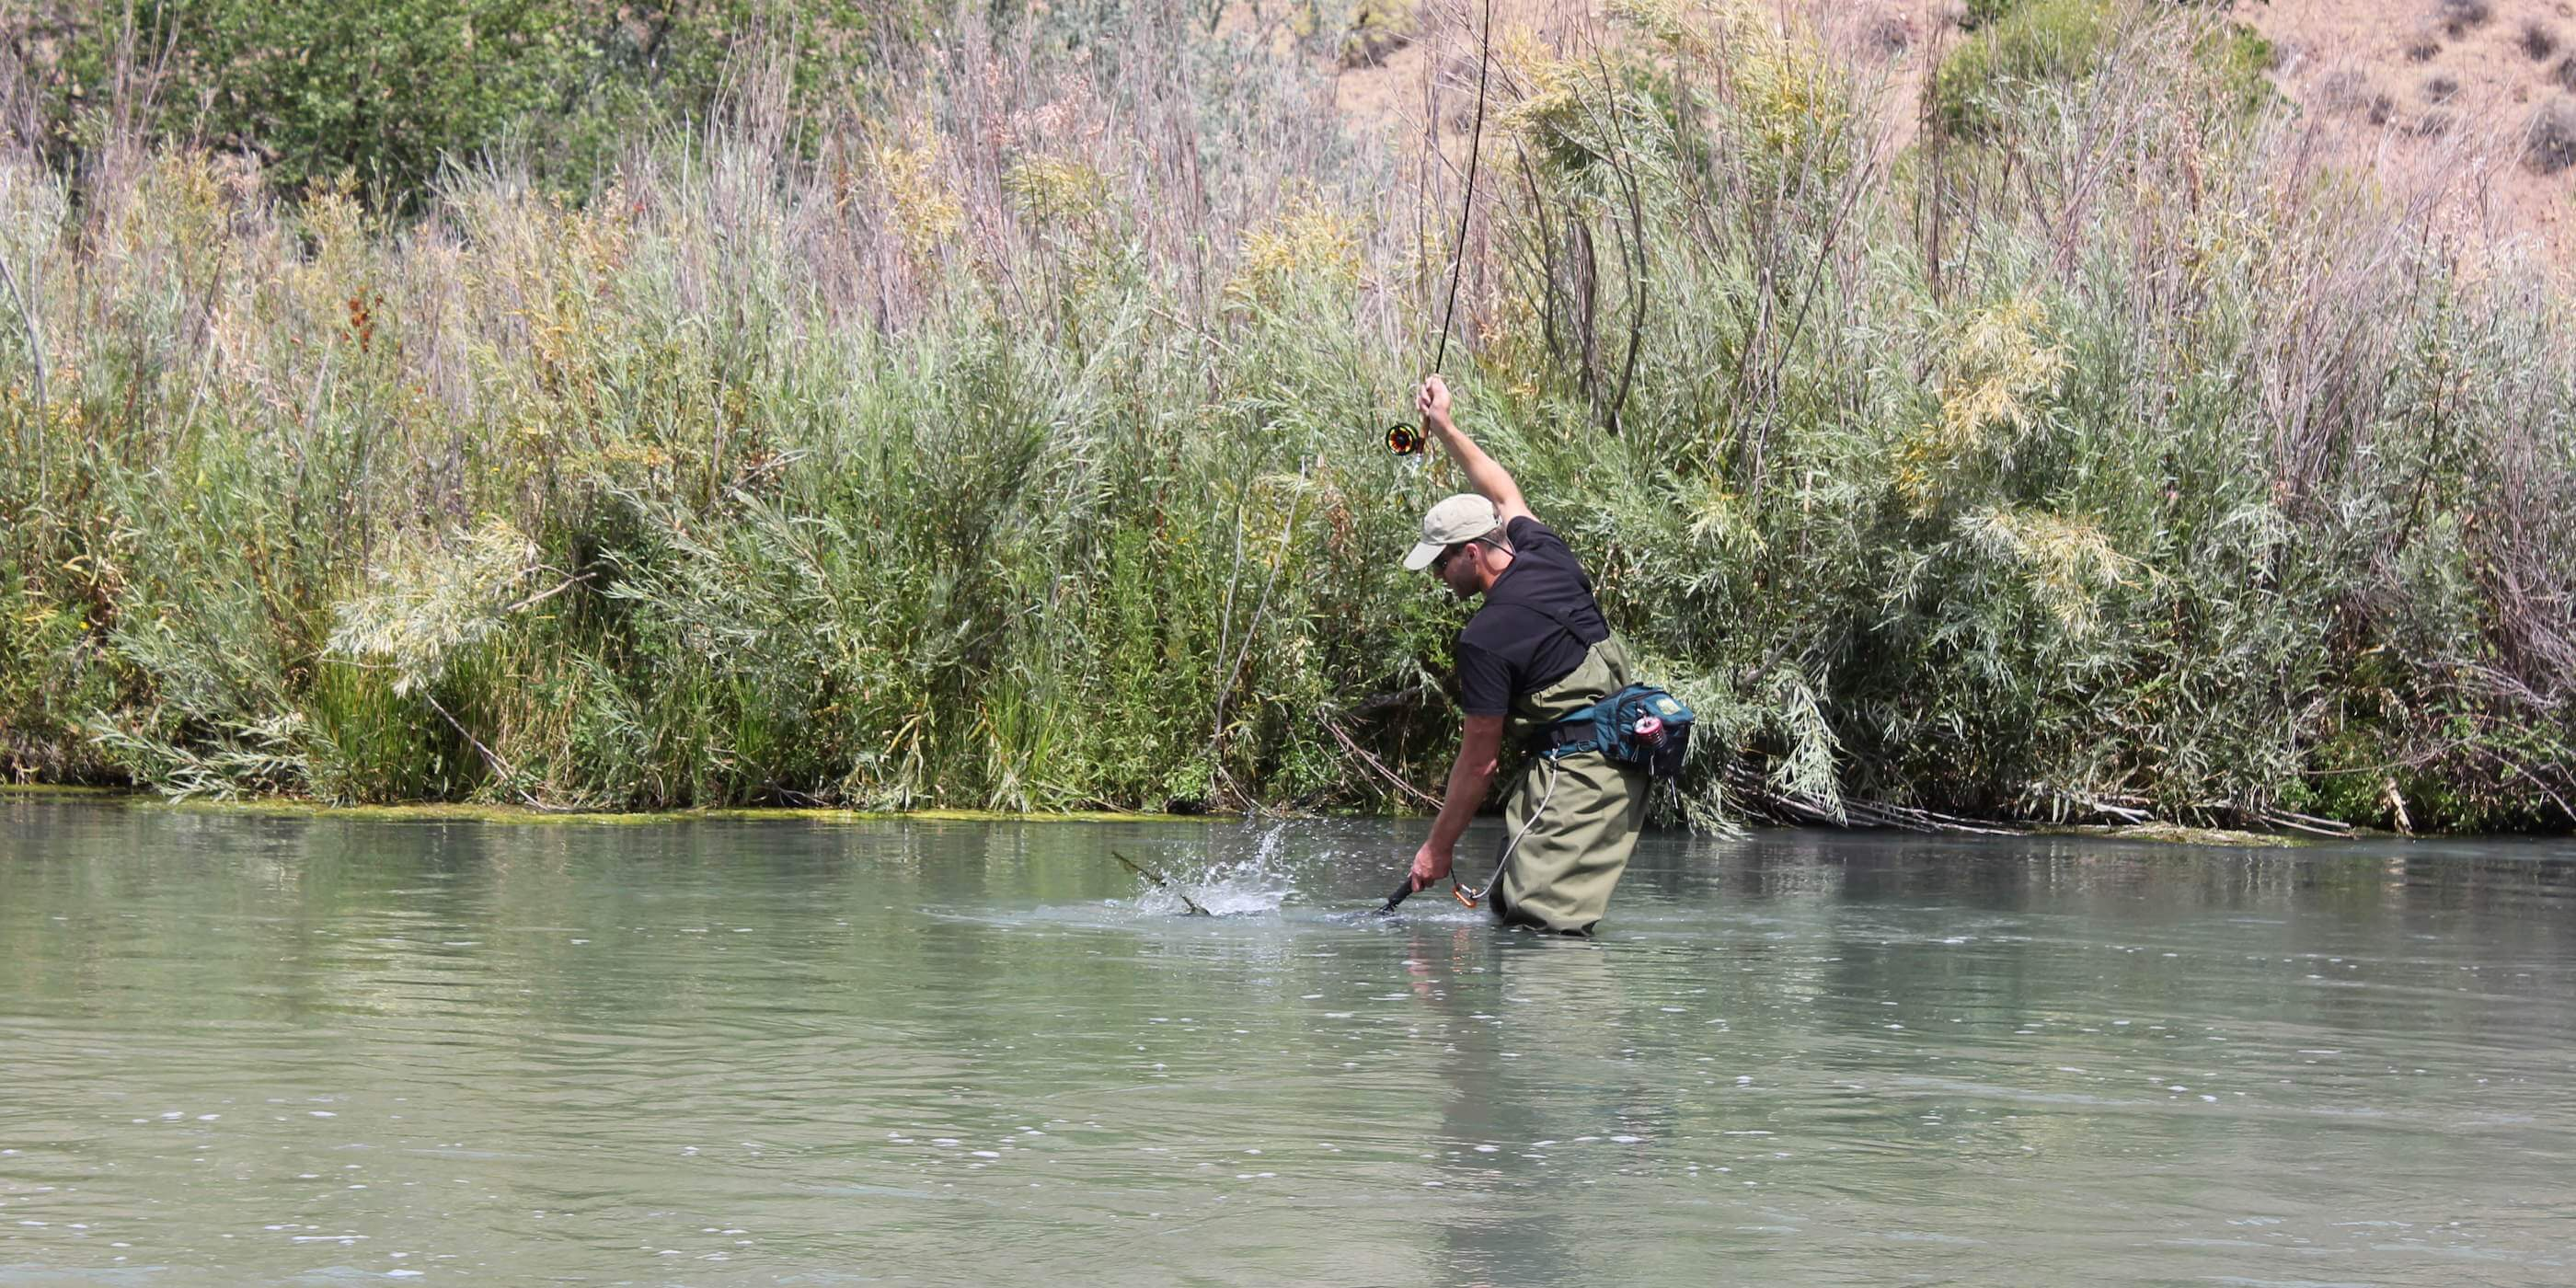 10 best fly fishing waders for the money man makes fire for Fly fishing waders